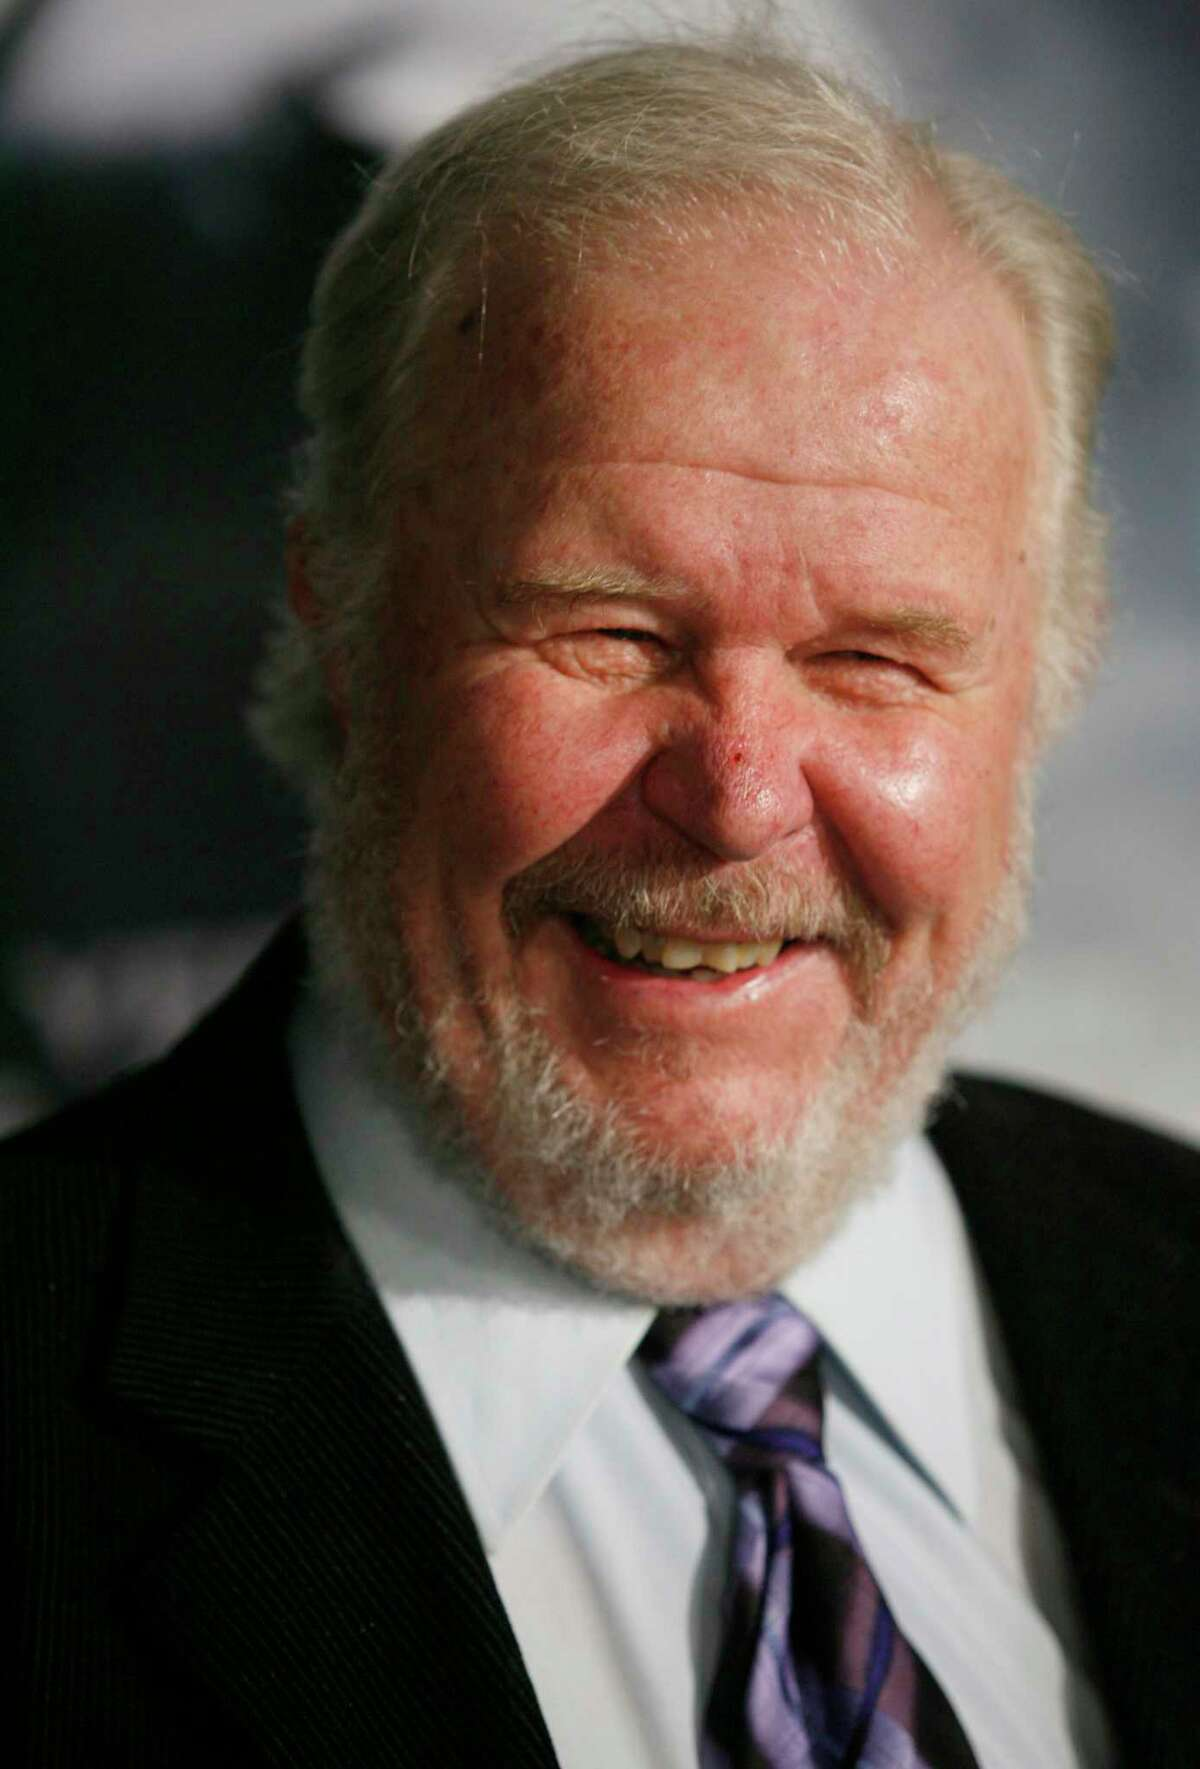 """FILE - In this Thursday, March 8, 2007, file photo, actor Ned Beatty arrives at the premiere of the movie """"Shooter,"""" in Los Angeles. Beatty, the indelible character actor whose first film role, as a genial vacationer brutally raped by a backwoodsman in 1972′s """"Deliverance,"""" launched him on a long, prolific and accomplished career, died Sunday, June 13, 2021. He was 83."""